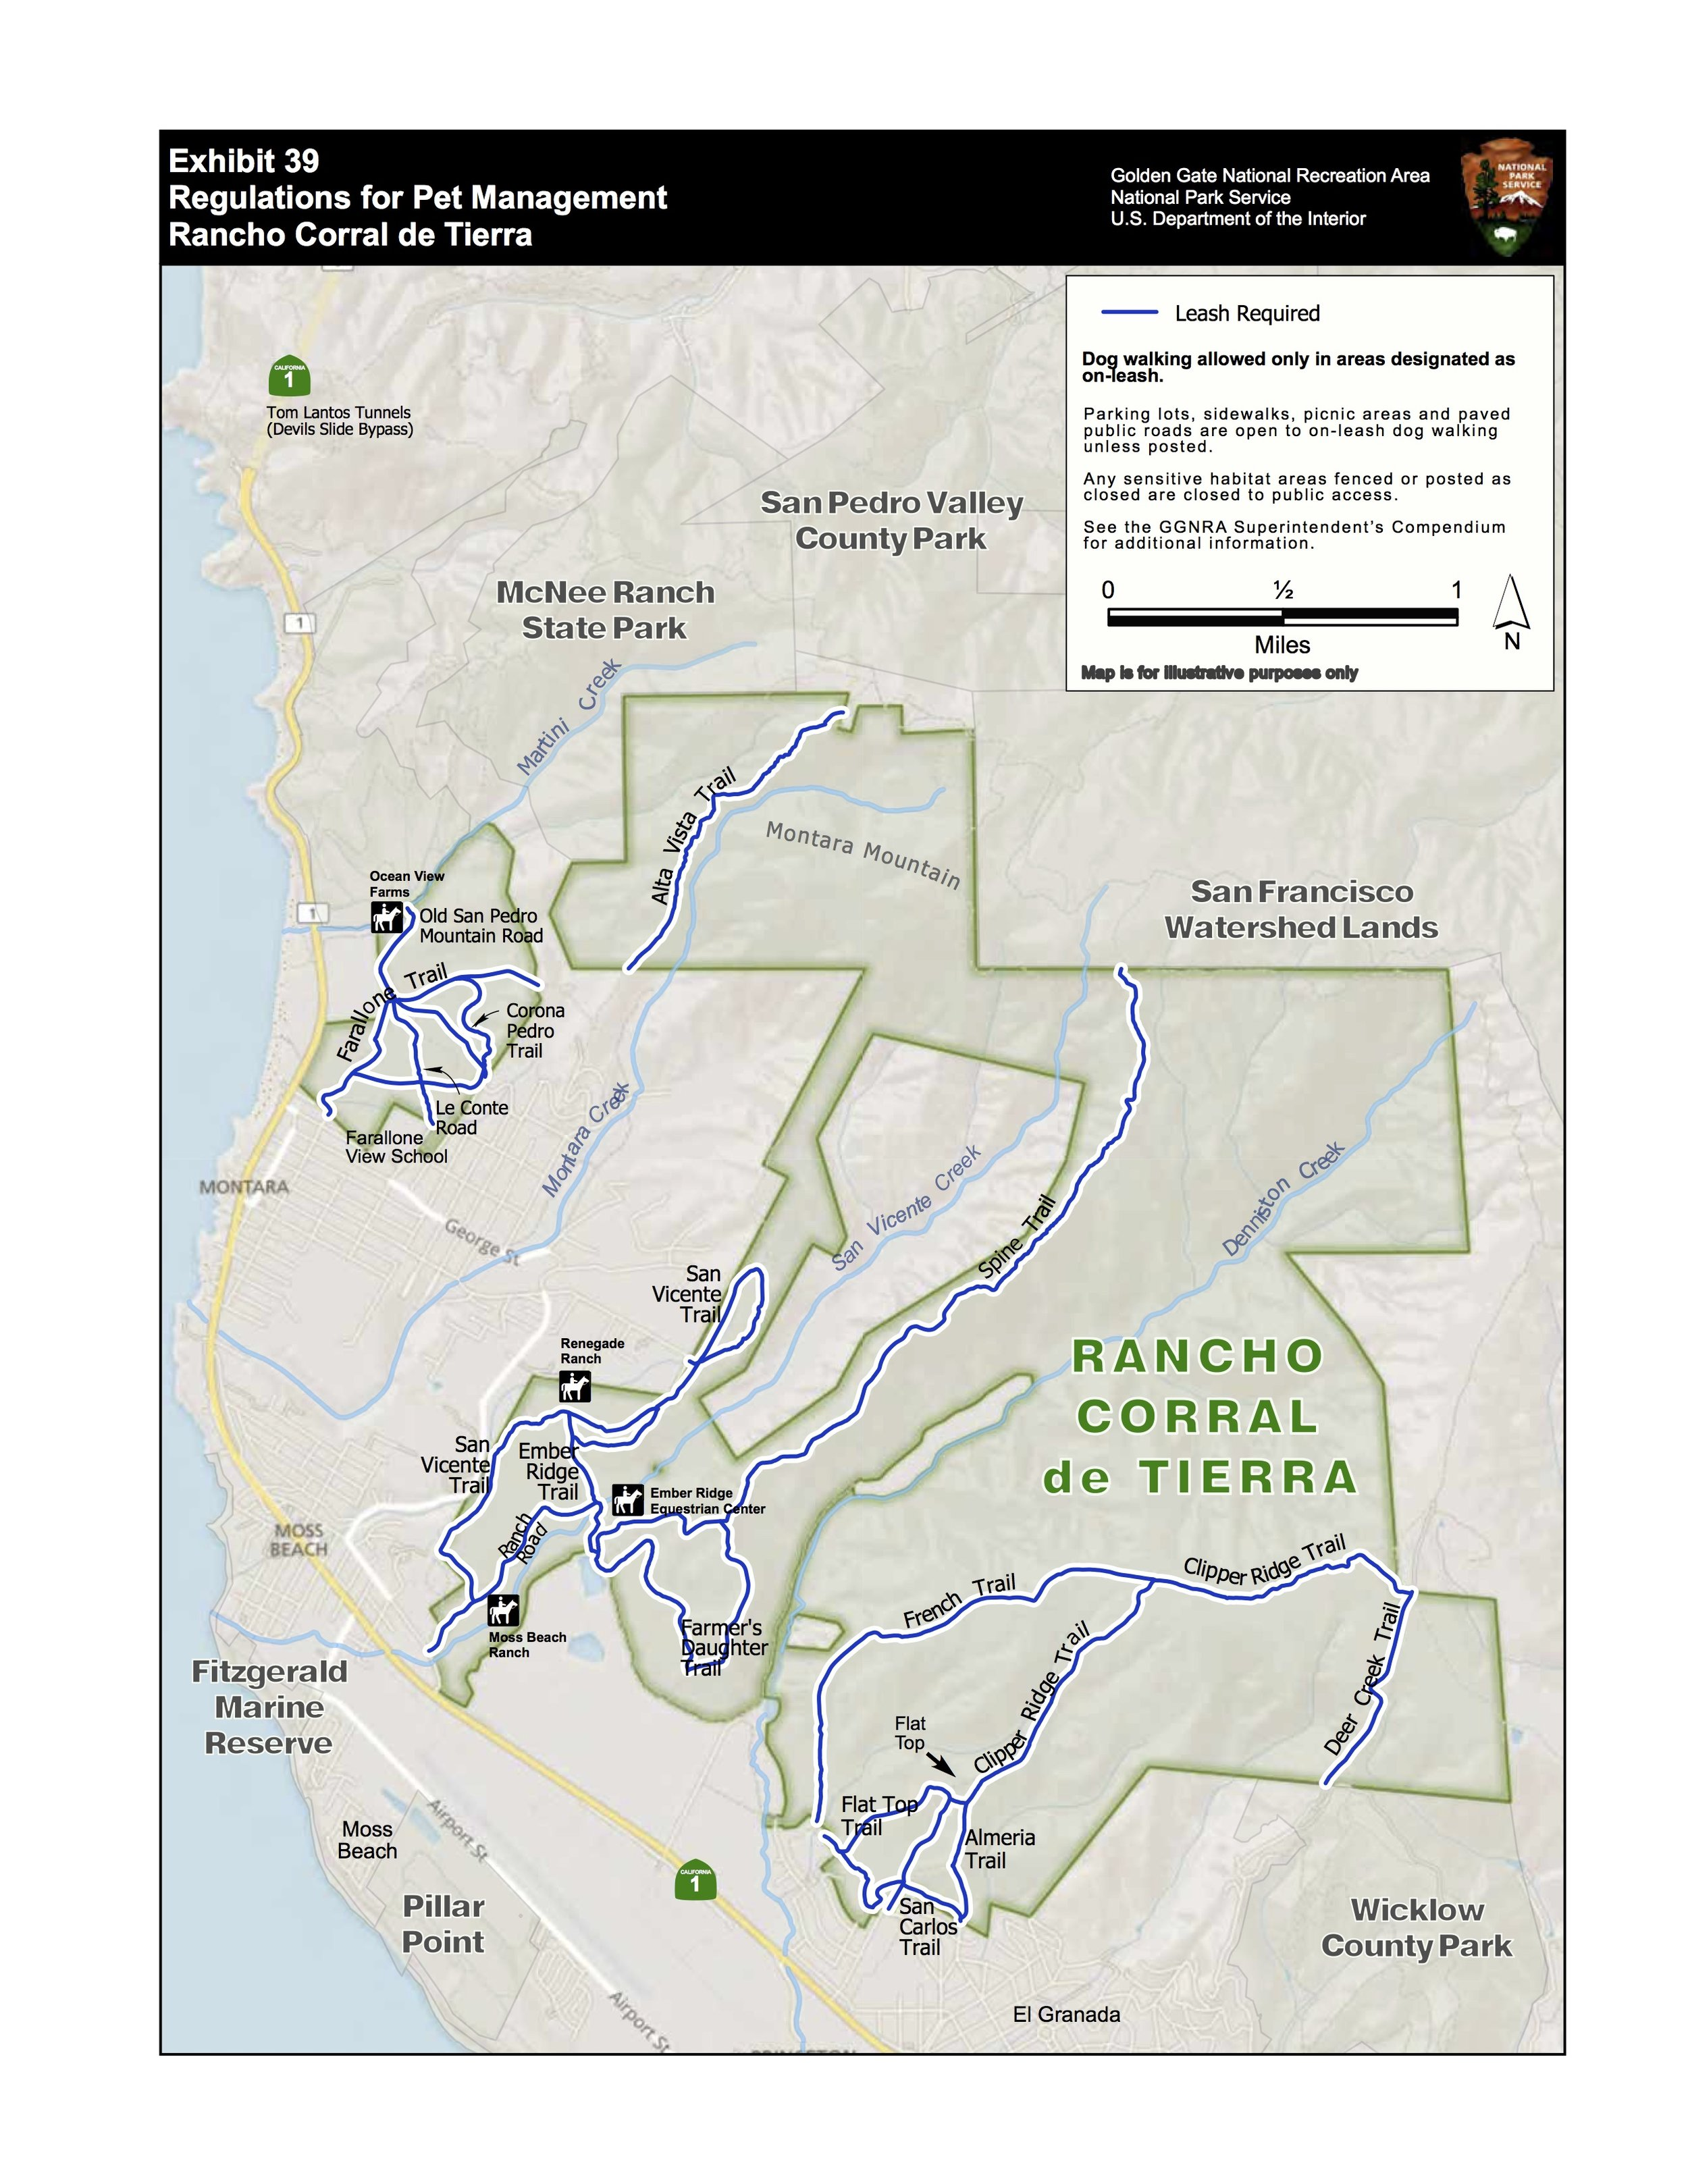 2019 COMPENDIUM MAP ELIMINATING DOG WALKING IN AREAS THROUGHOUT RANCHO INCLUDING TRAILS NOT LISTED ON GGNRA'S MAPS  *NOTE: HIKERS WITHOUT DOGS HAVE TO STAY ON TRAIL NEAR THE STABLES, BUT CAN CONTINUE TO ACCESS THE ENTIRE PARK.